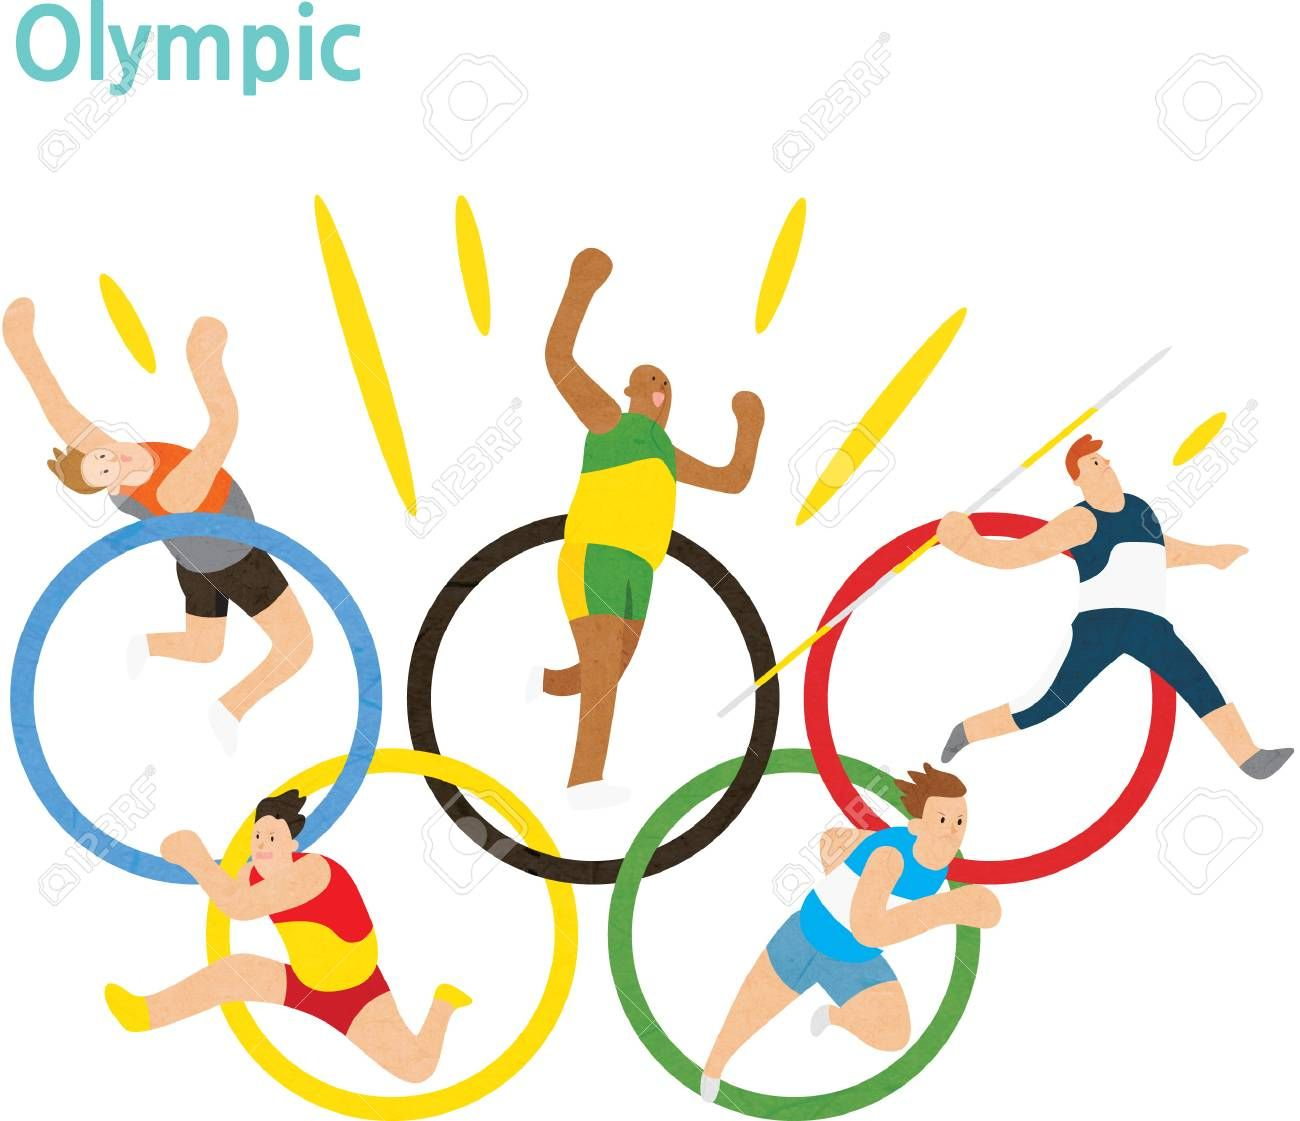 Olympic logo wiry athletes , AFF, logo, Olympic,